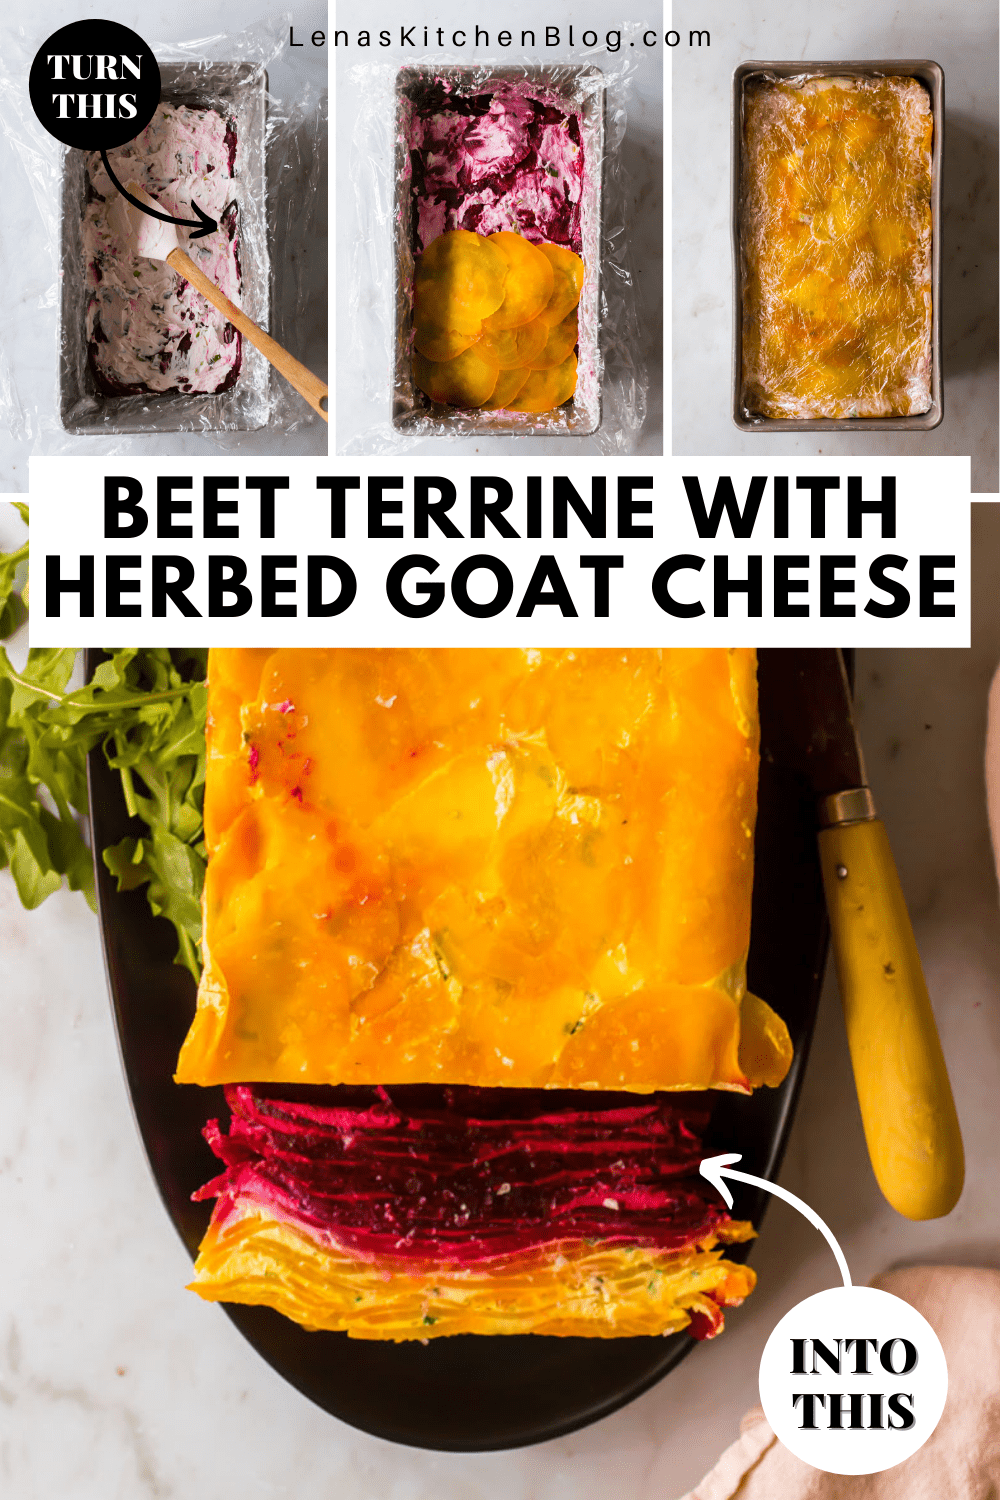 4 images showing the process of making a beet and goat cheese terrine